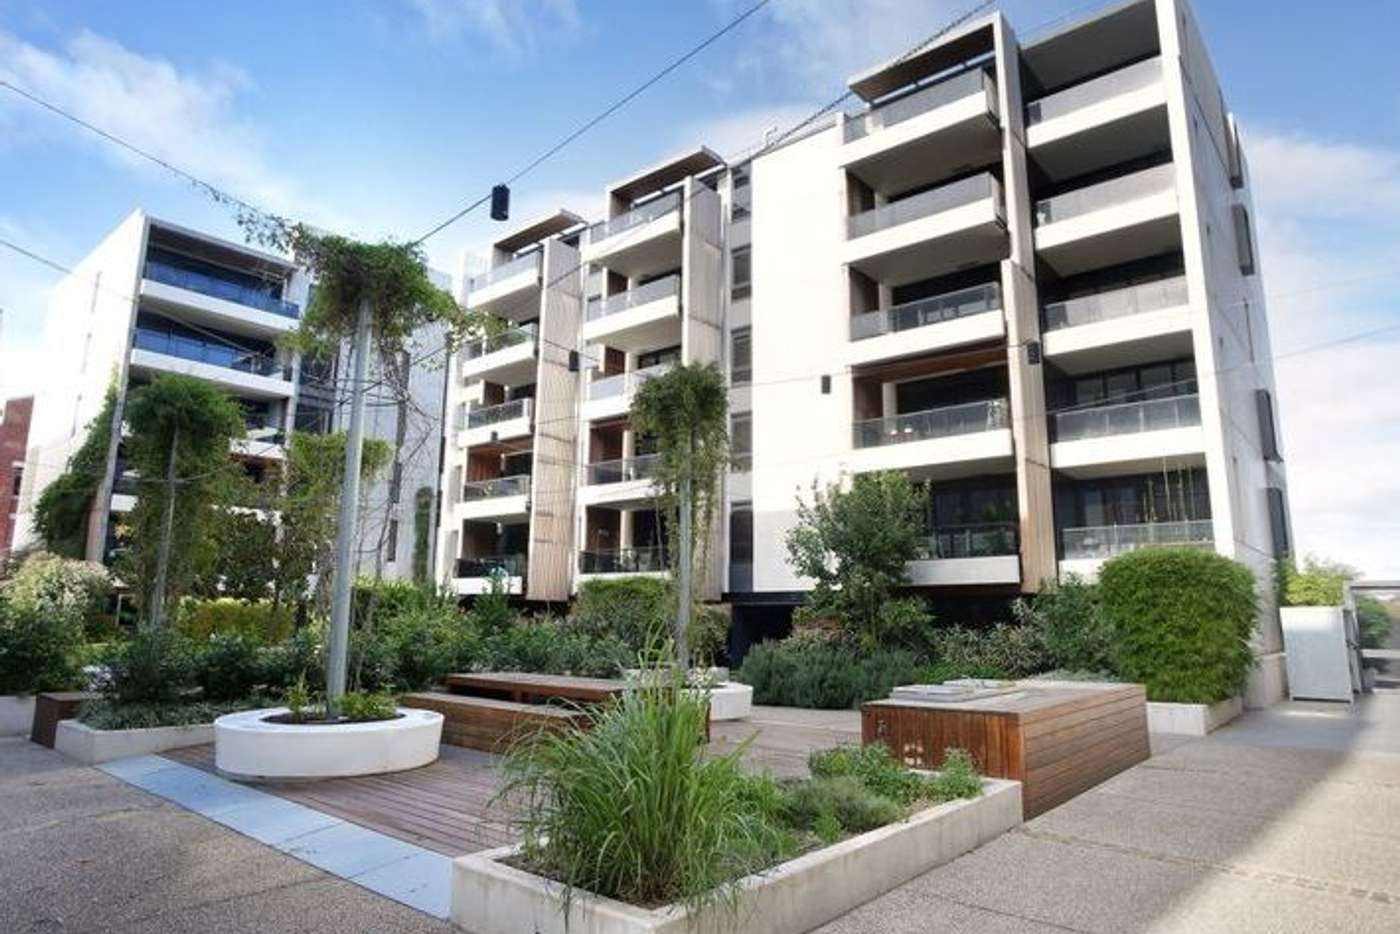 Main view of Homely apartment listing, 401/1 Studio Walk, Richmond VIC 3121